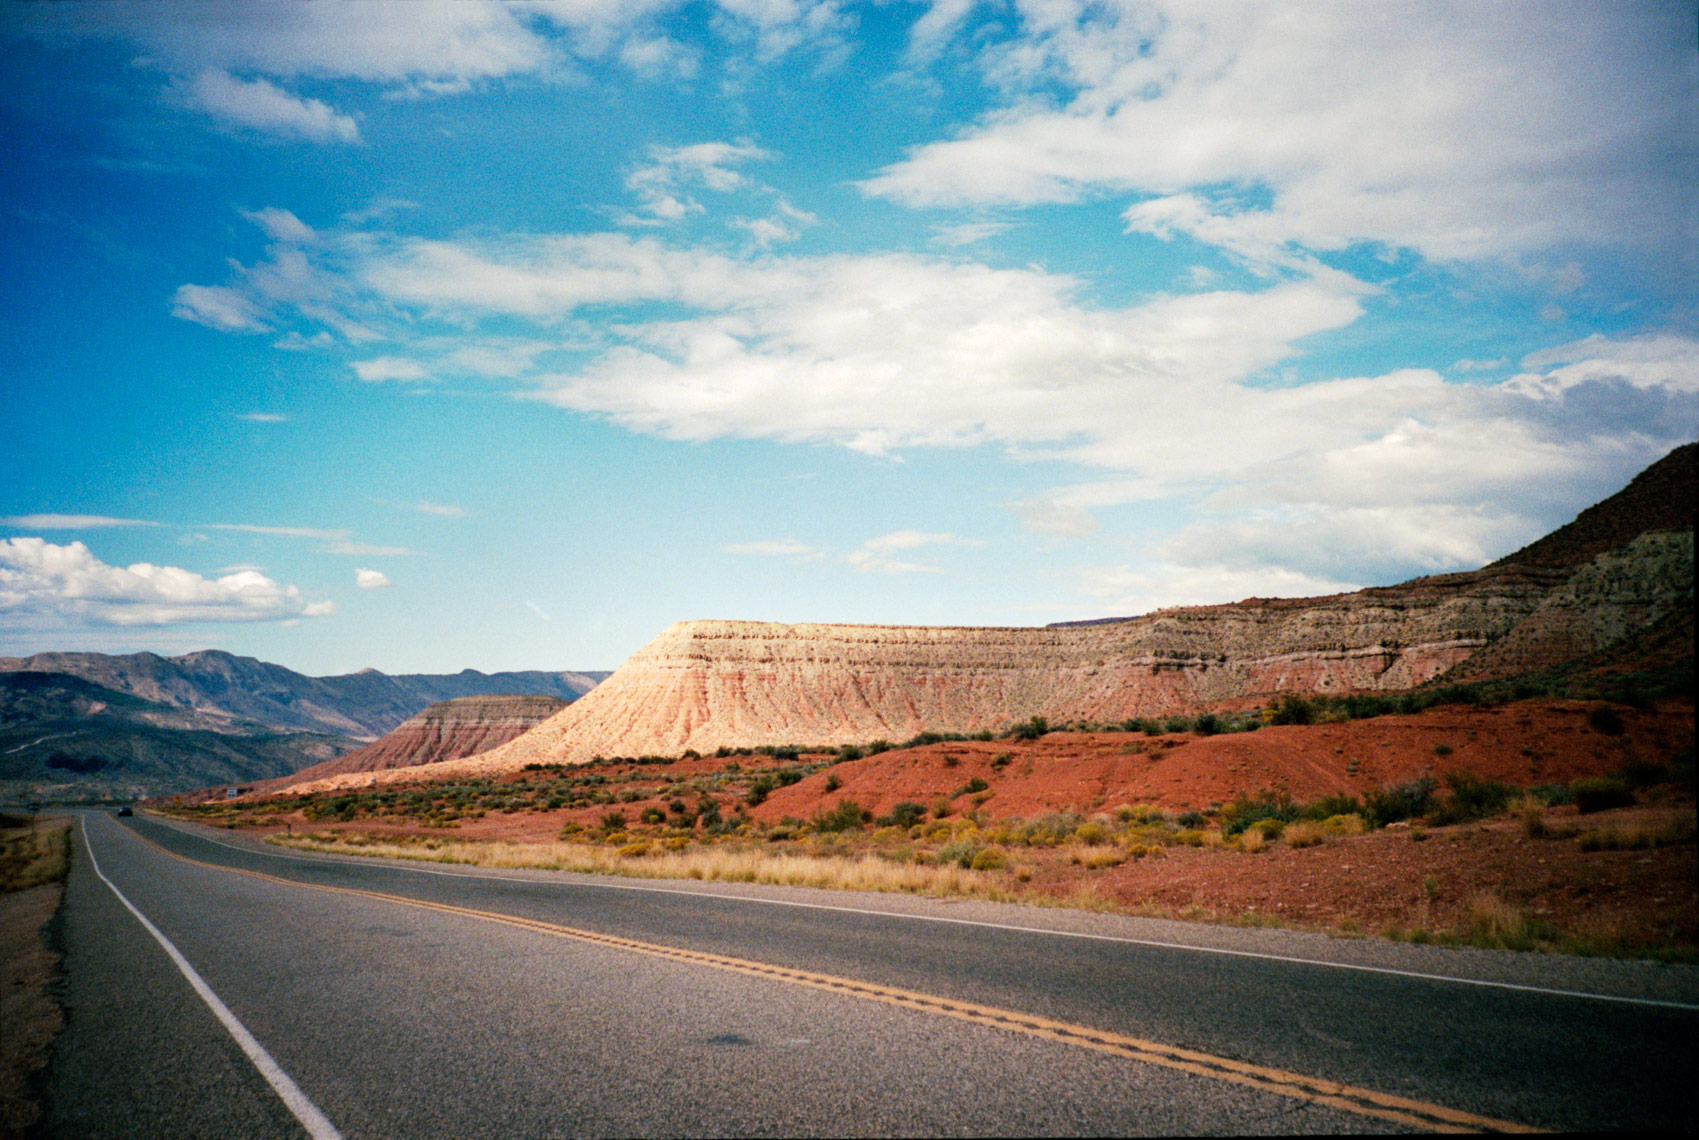 view on the road to Zion National Park